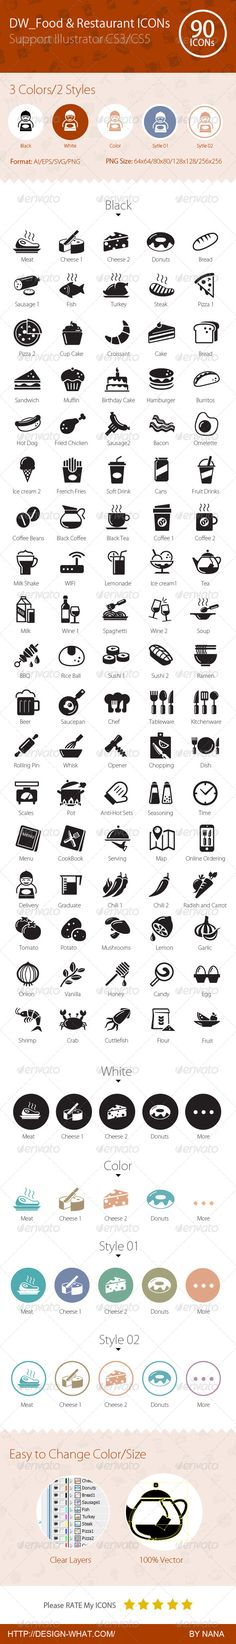 90 Food & Restaurant ICONs | Buy and Download: http://graphicriver.net/item/90-food-restaurant-icons/6283144?WT.ac=category_thumb&WT.z_author=90Box&ref=ksioks